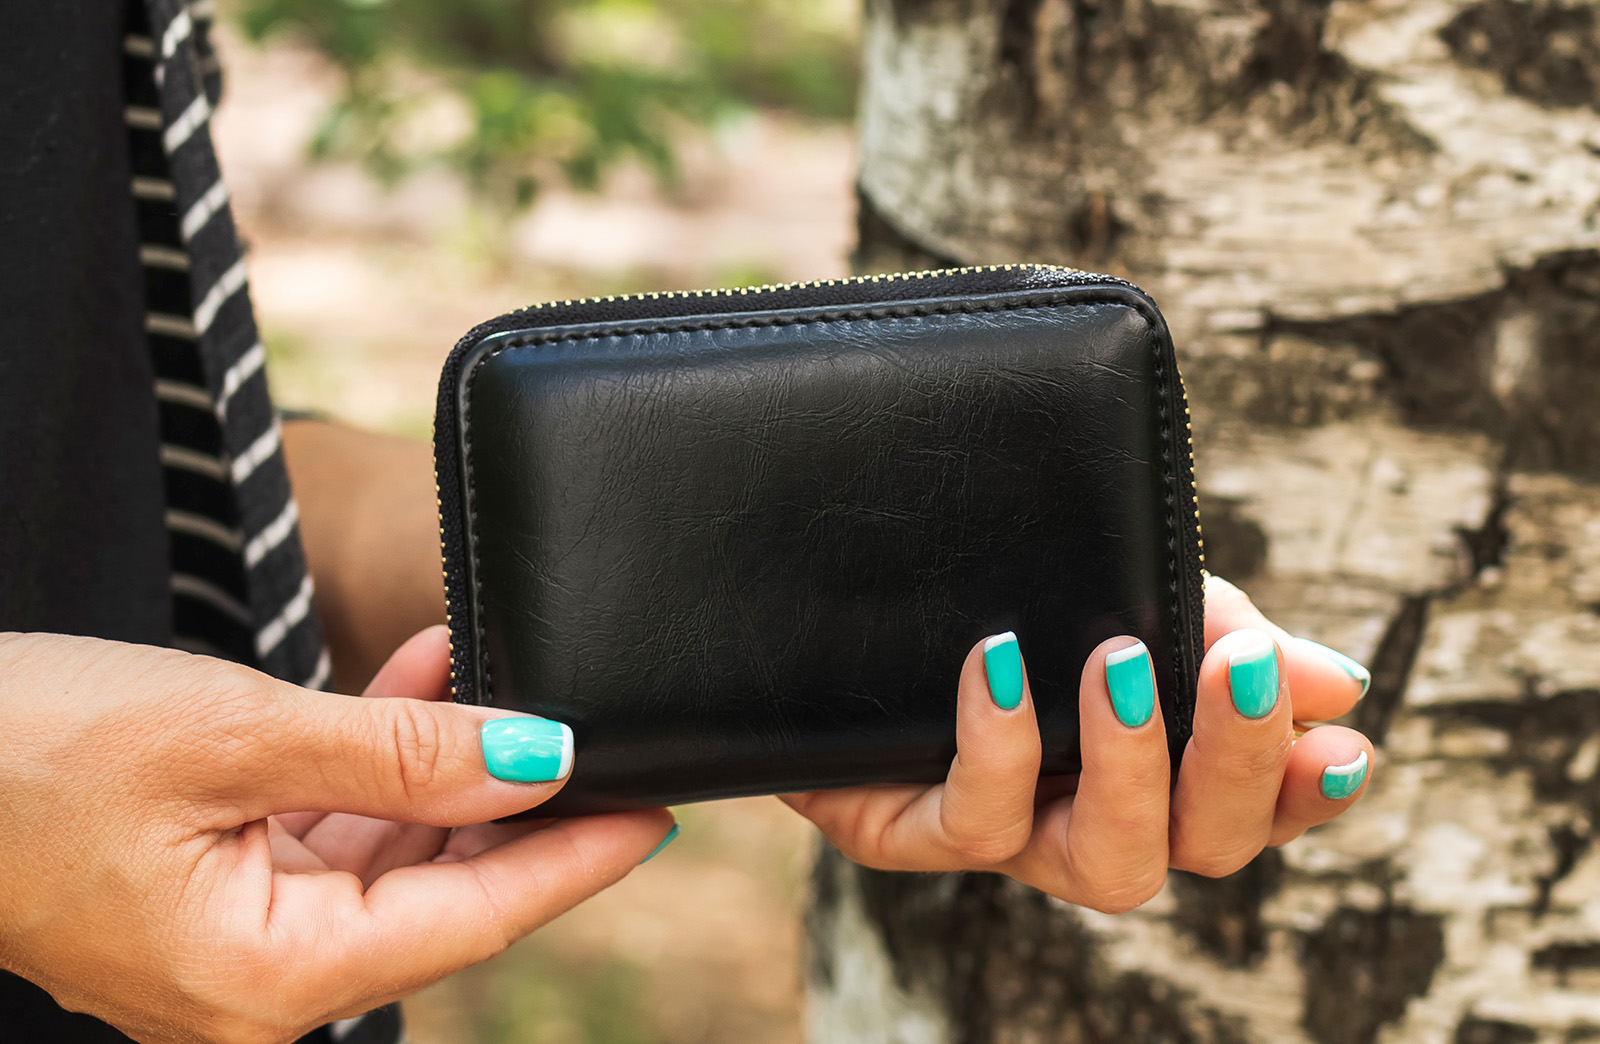 Black wallet being held by painted nails